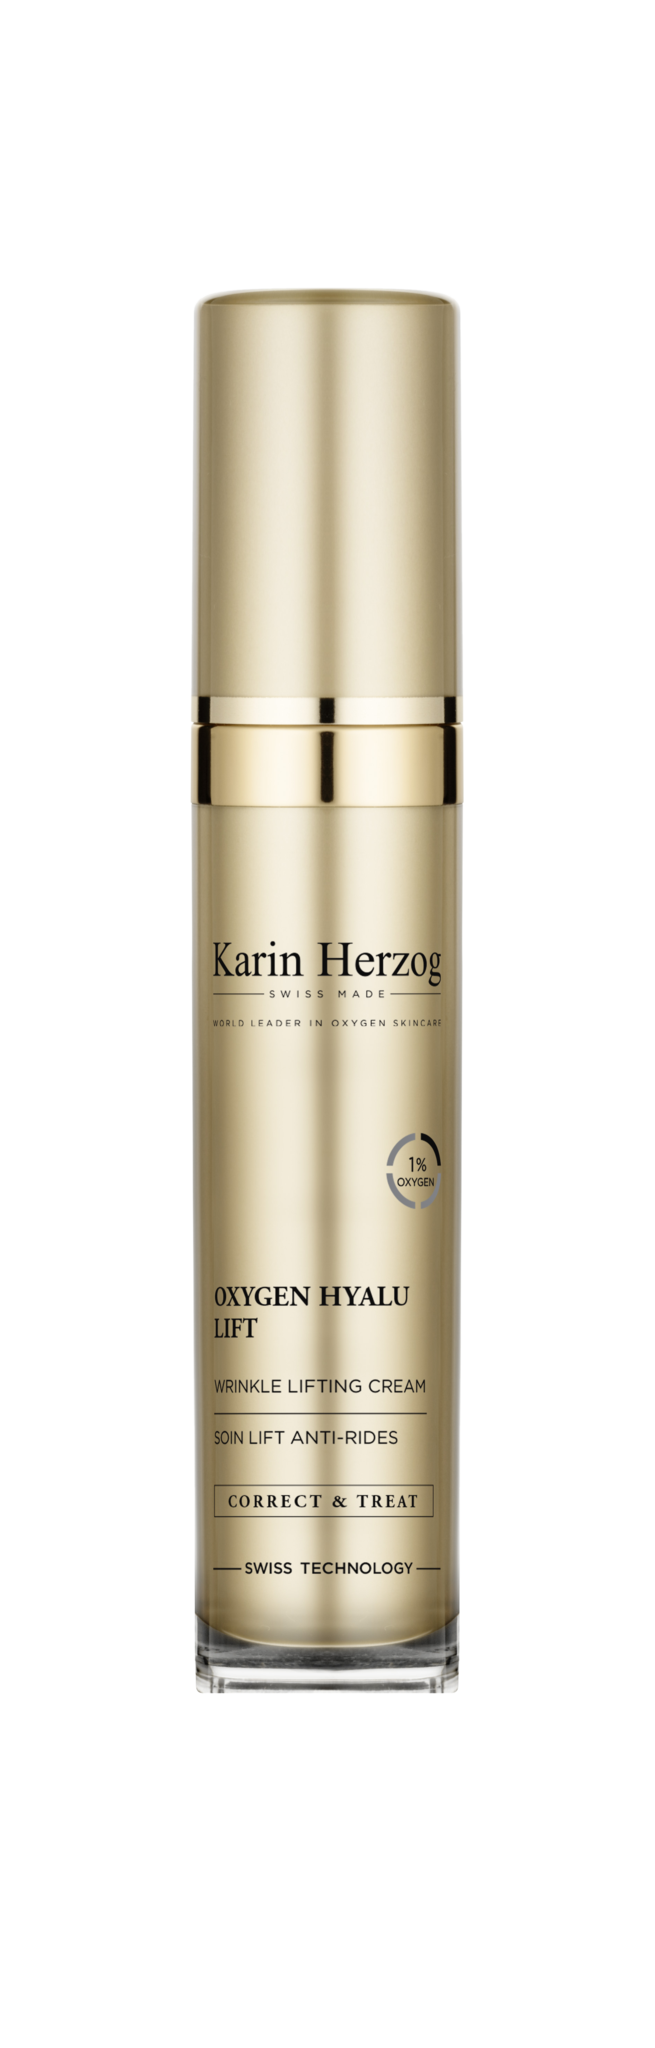 Oxygen Hyalu Lift 30ml  - Buy One Get One Free This June!